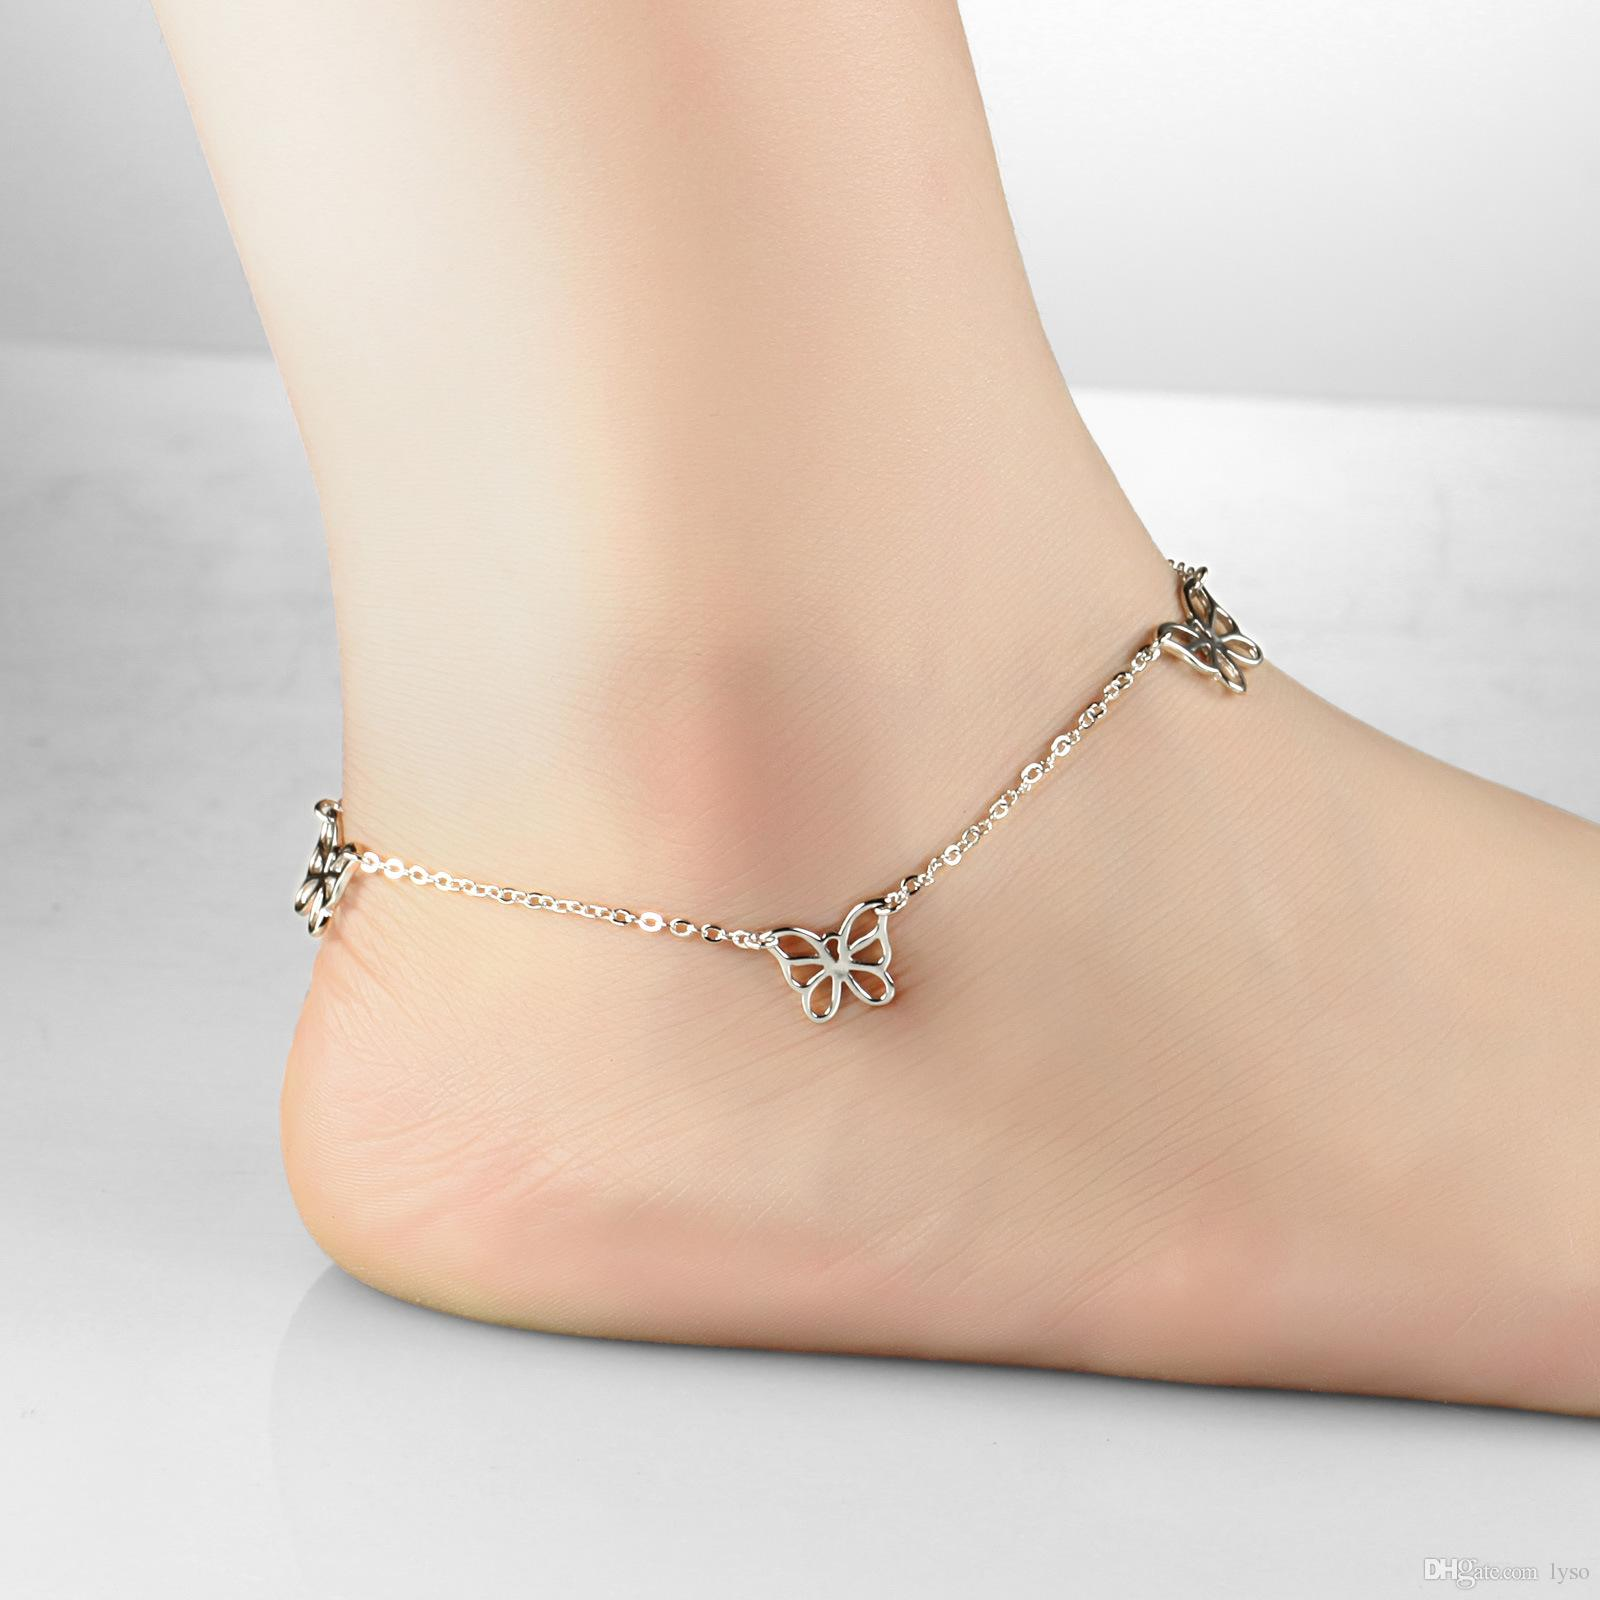 foot beach listing il anklet zoom wedding sandal jewelry crystal barefoot fullxfull asuj